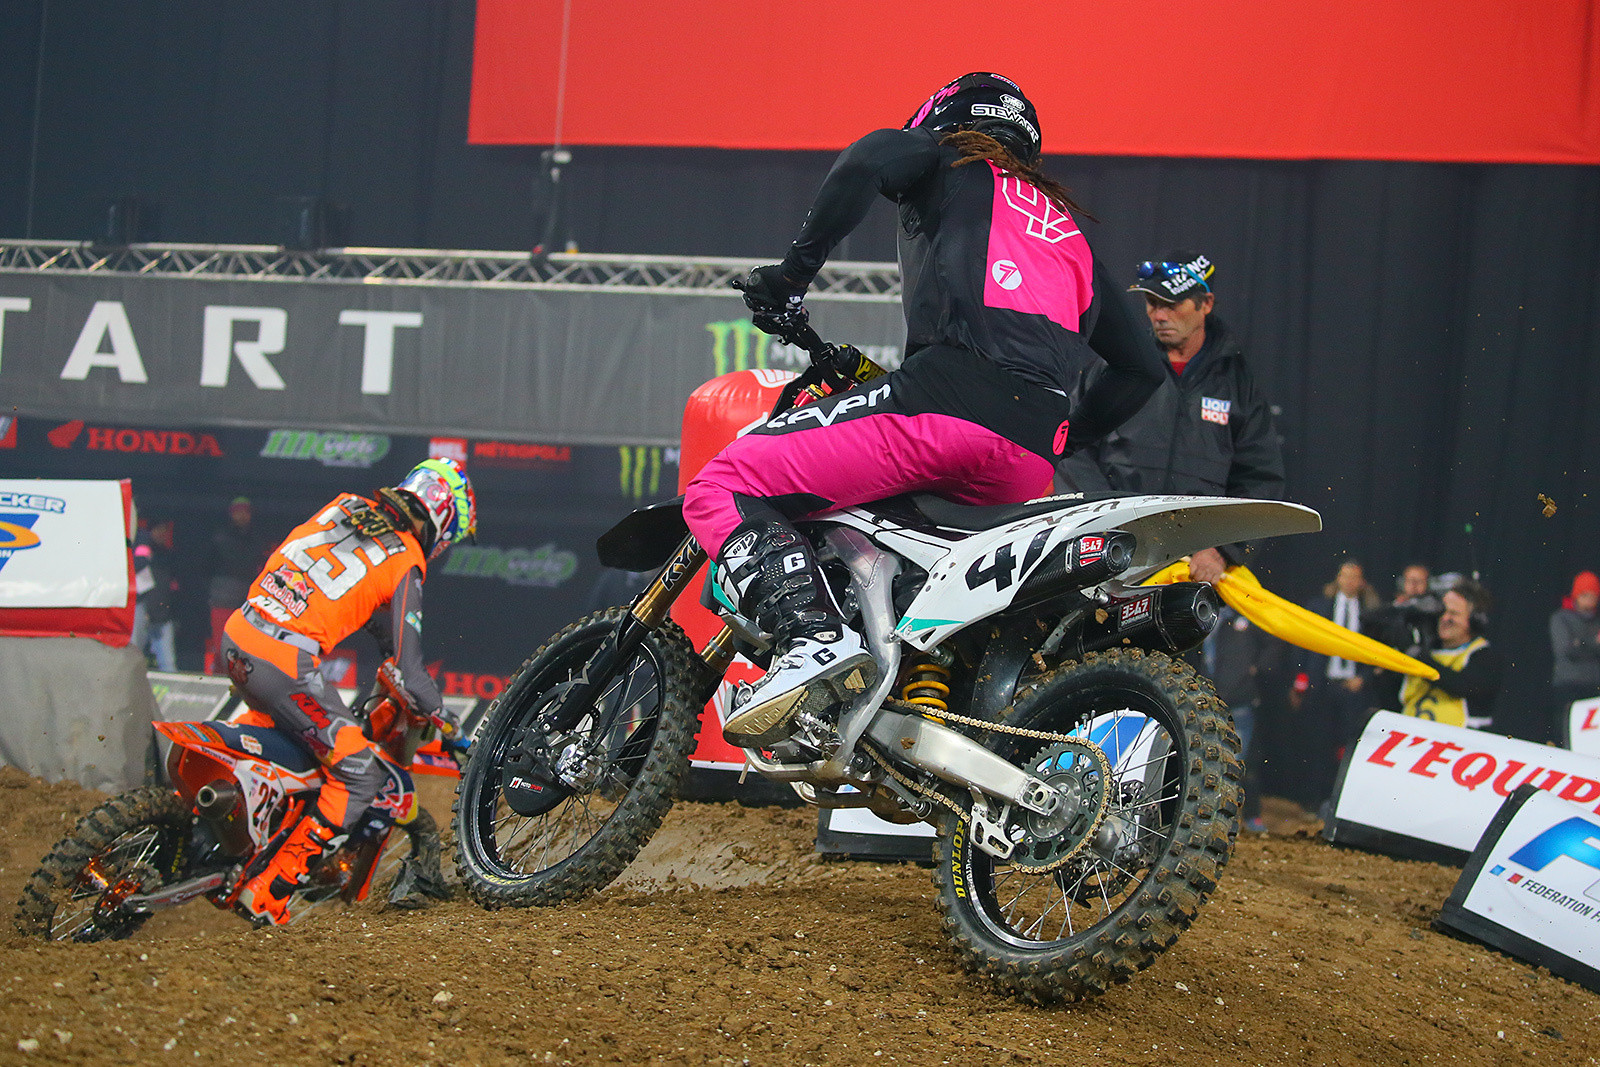 Marvin Musquin and Malcolm Stewart - Photo Gallery: Saturday at the Paris-Lille Supercross - Motocross Pictures - Vital MX